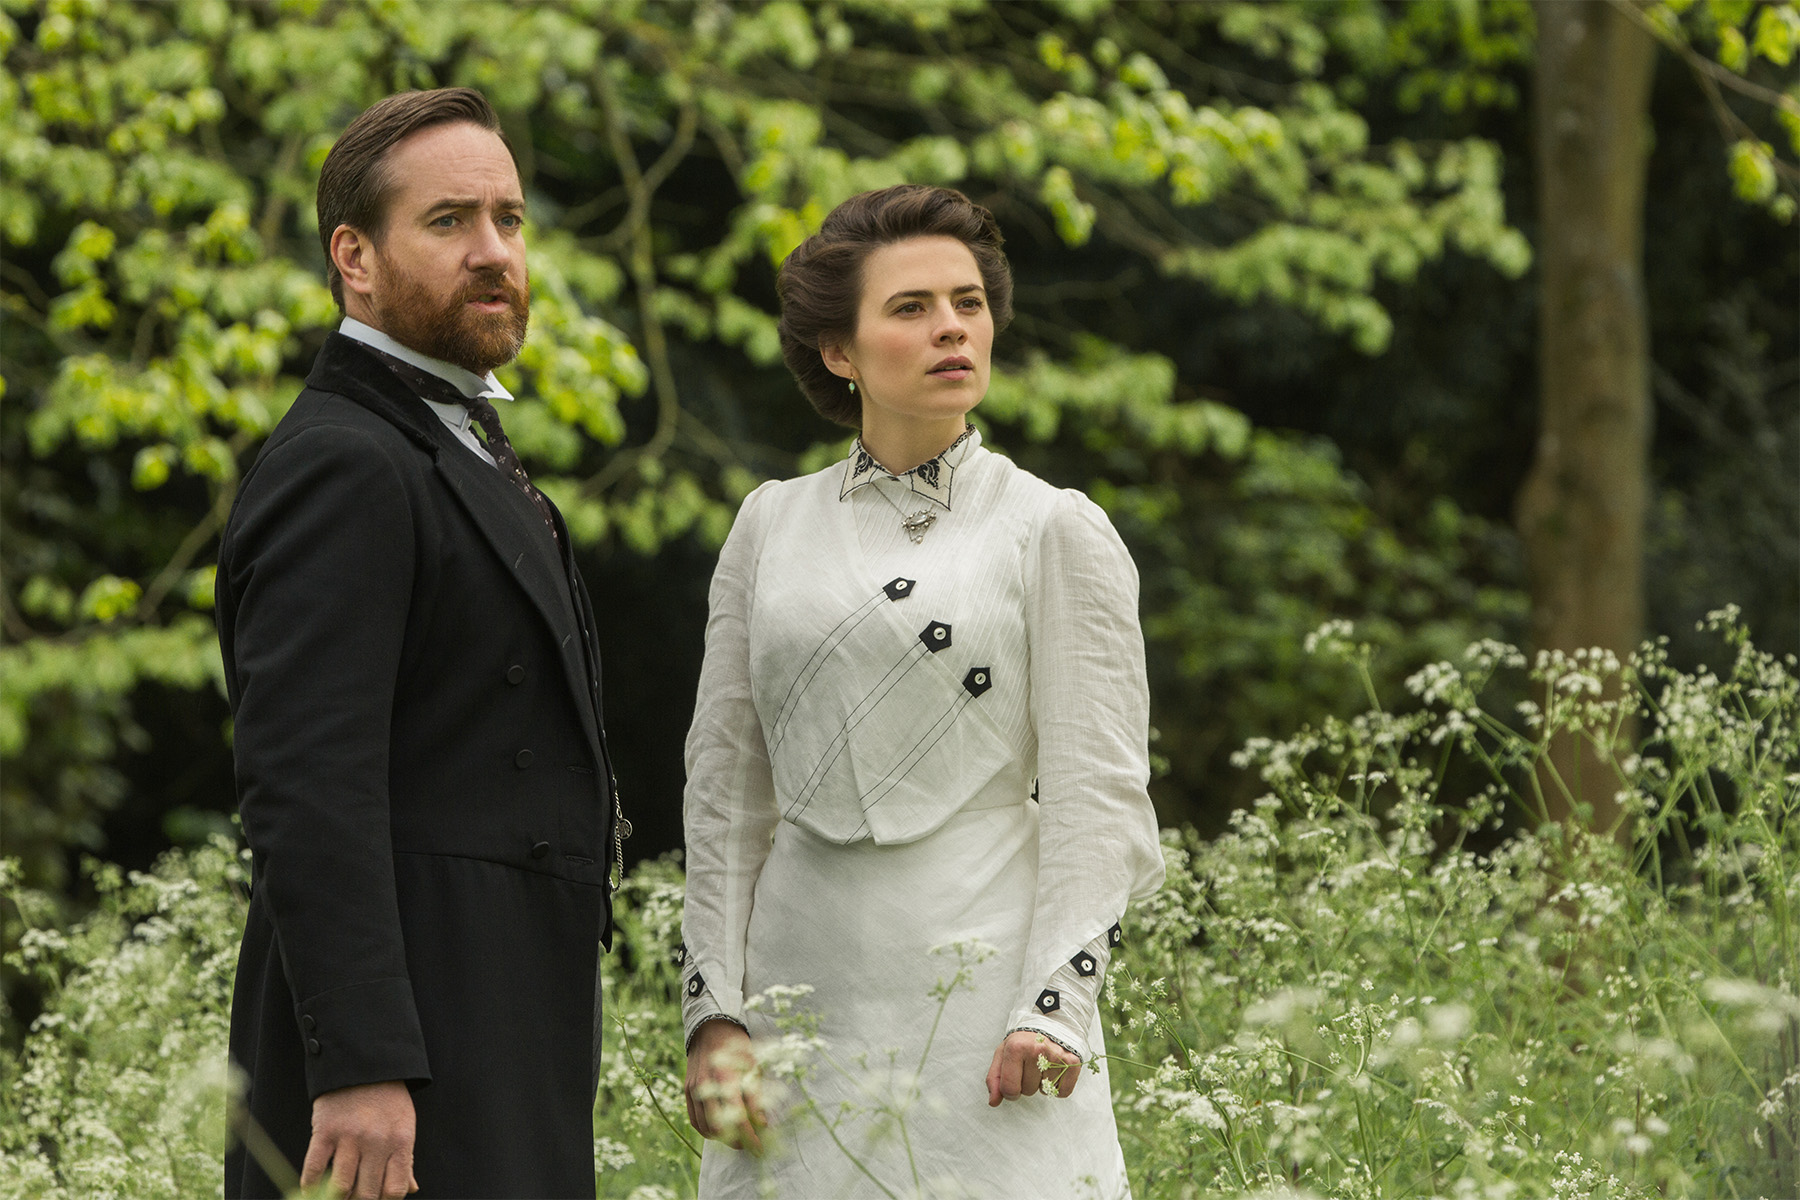 howards_end_hayley_atwell_matthew_macfadyen.jpg